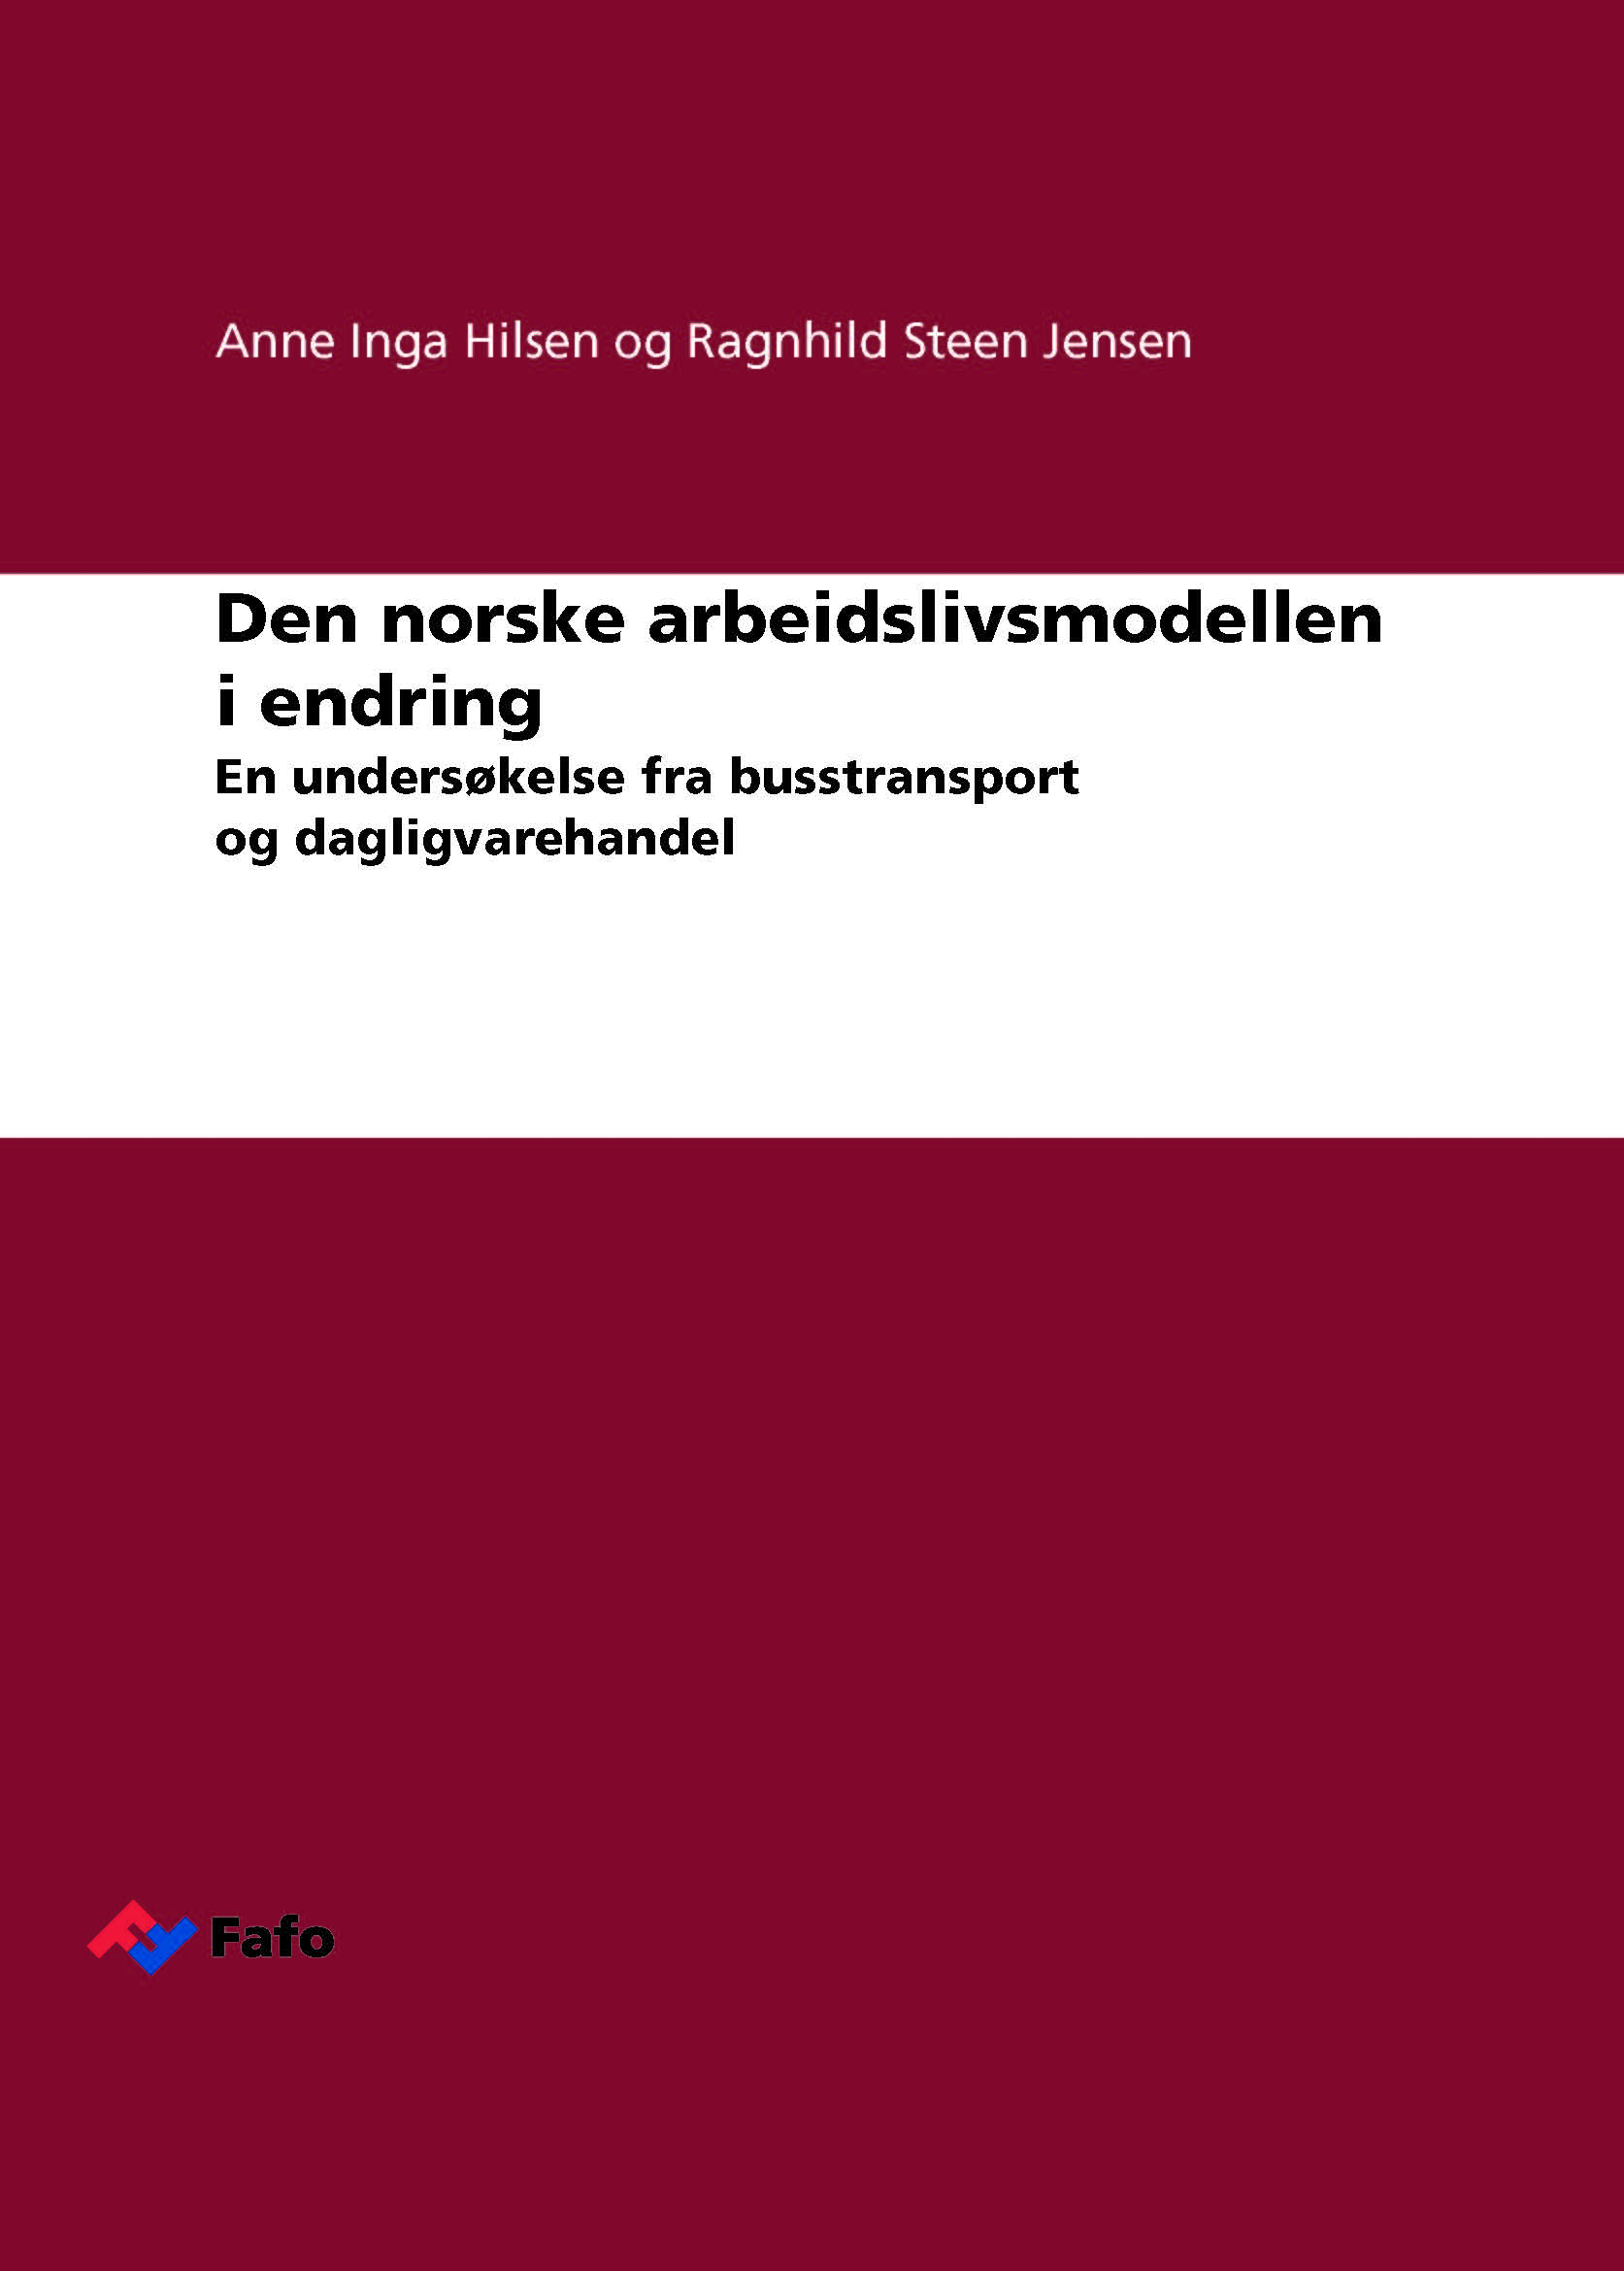 New report on changes in the Norwegian  labour market model